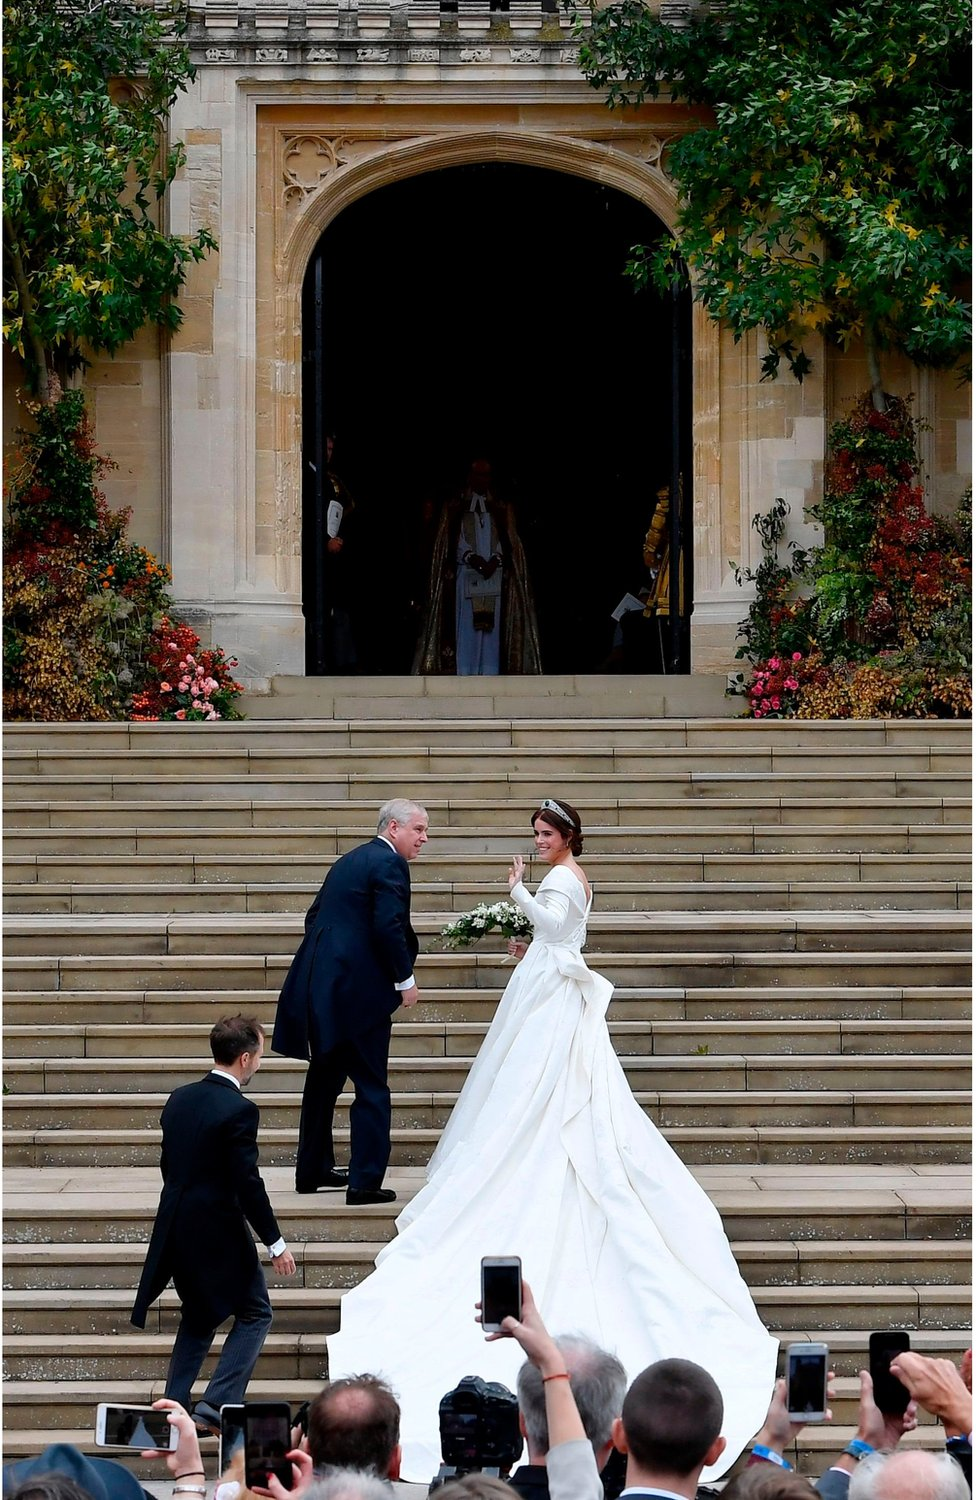 Princess Eugenie of York climbed the steps with her father Prince Andrew, Duke of York